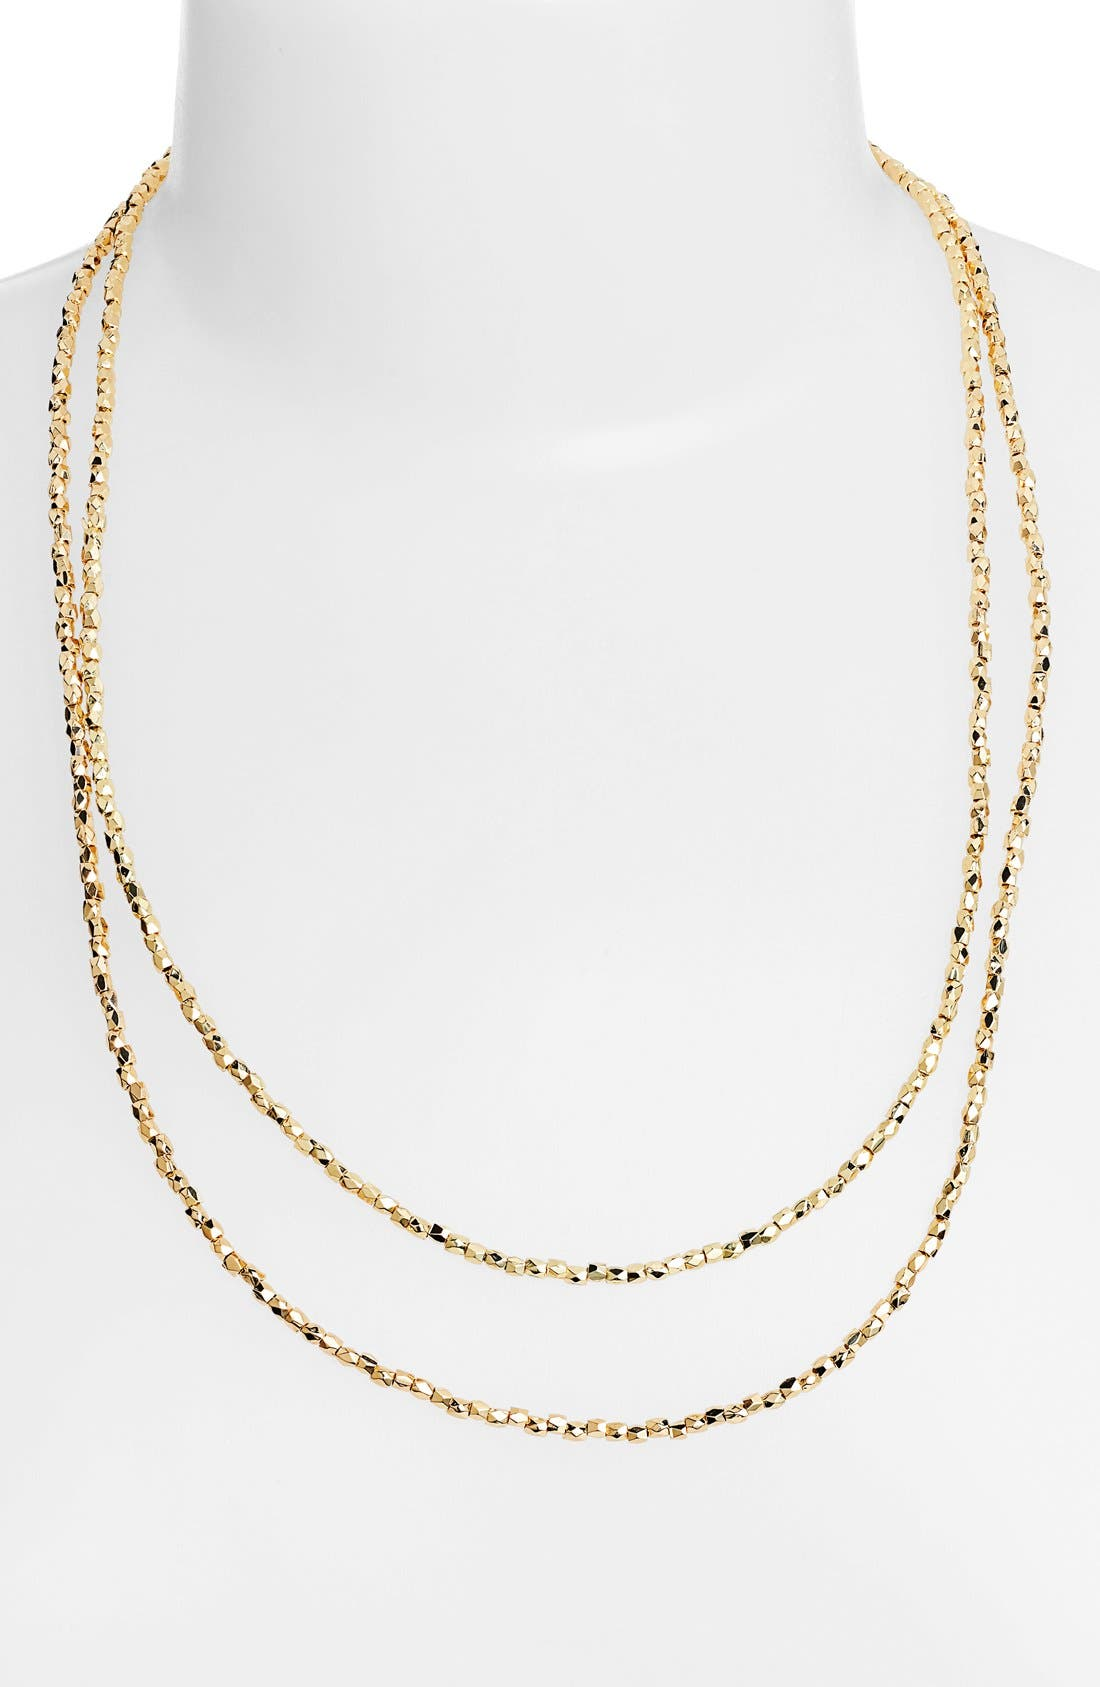 Alternate Image 1 Selected - Nordstrom 'Layers of Love' Extra Long Bead Necklace